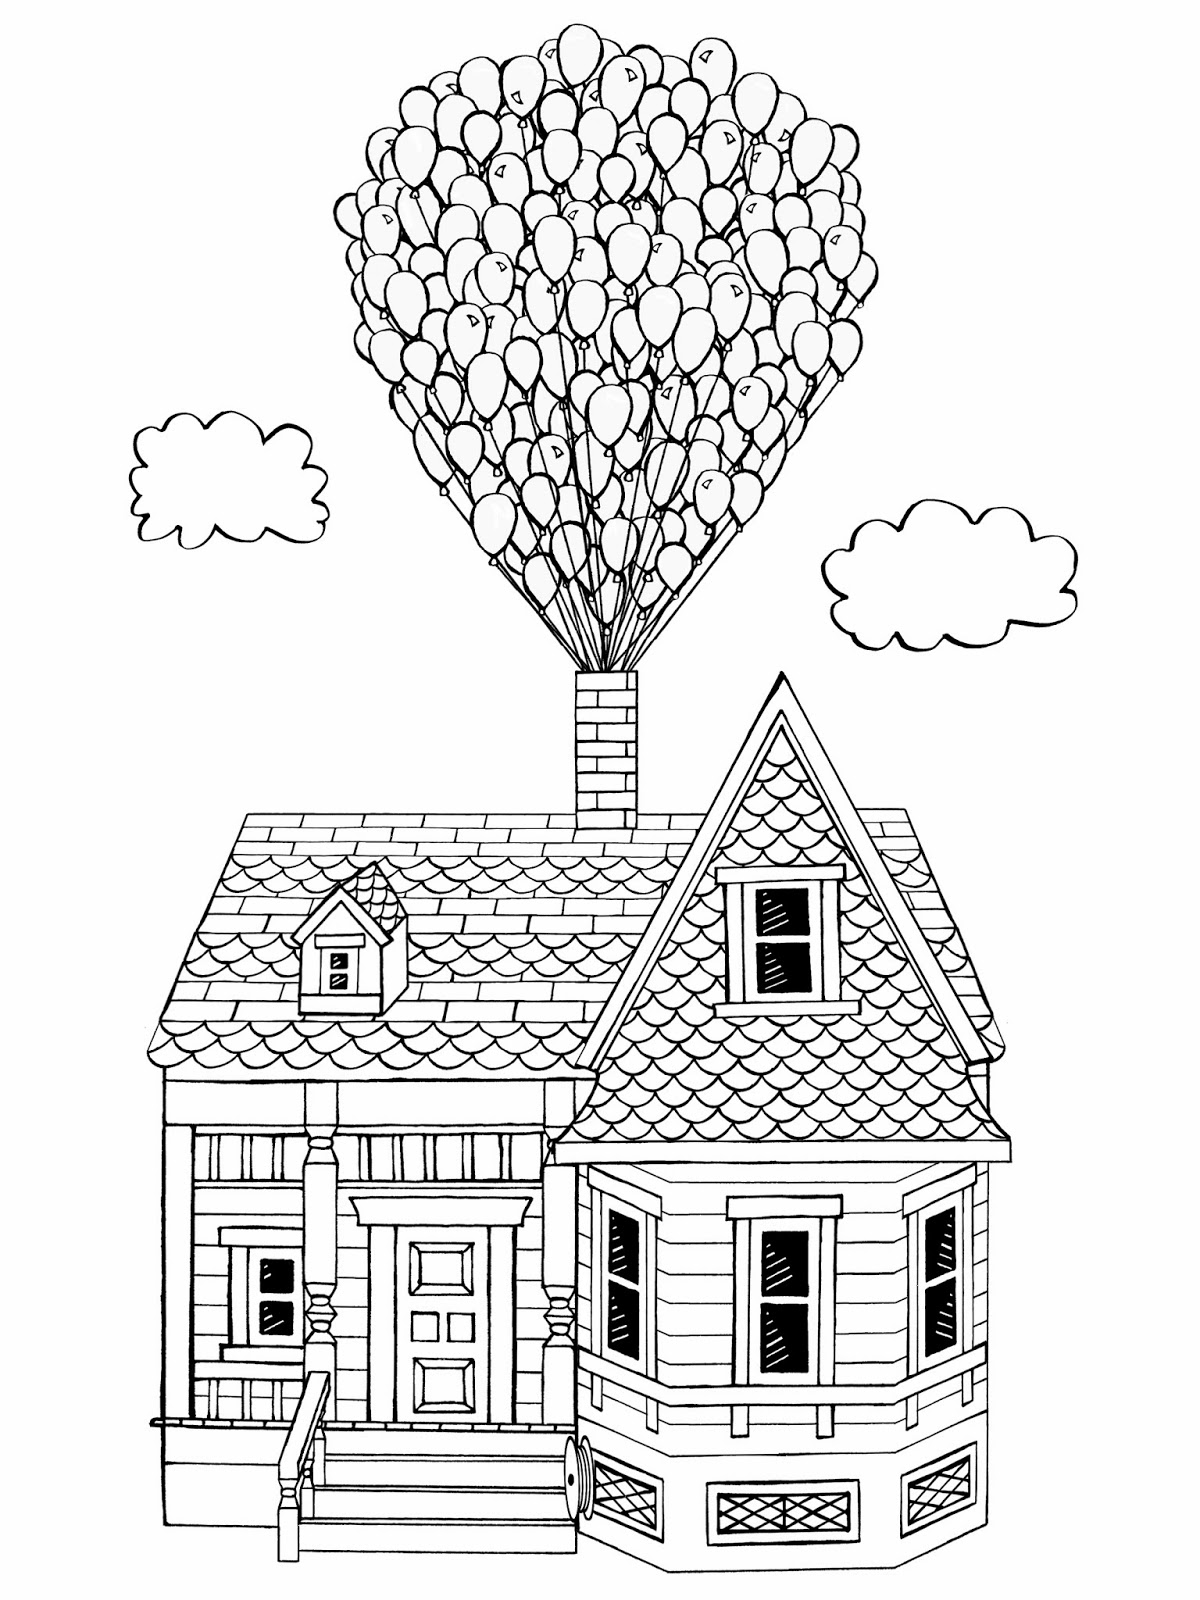 pixar up house coloring pages pixar up house drawing at getdrawings free download up coloring house pages pixar